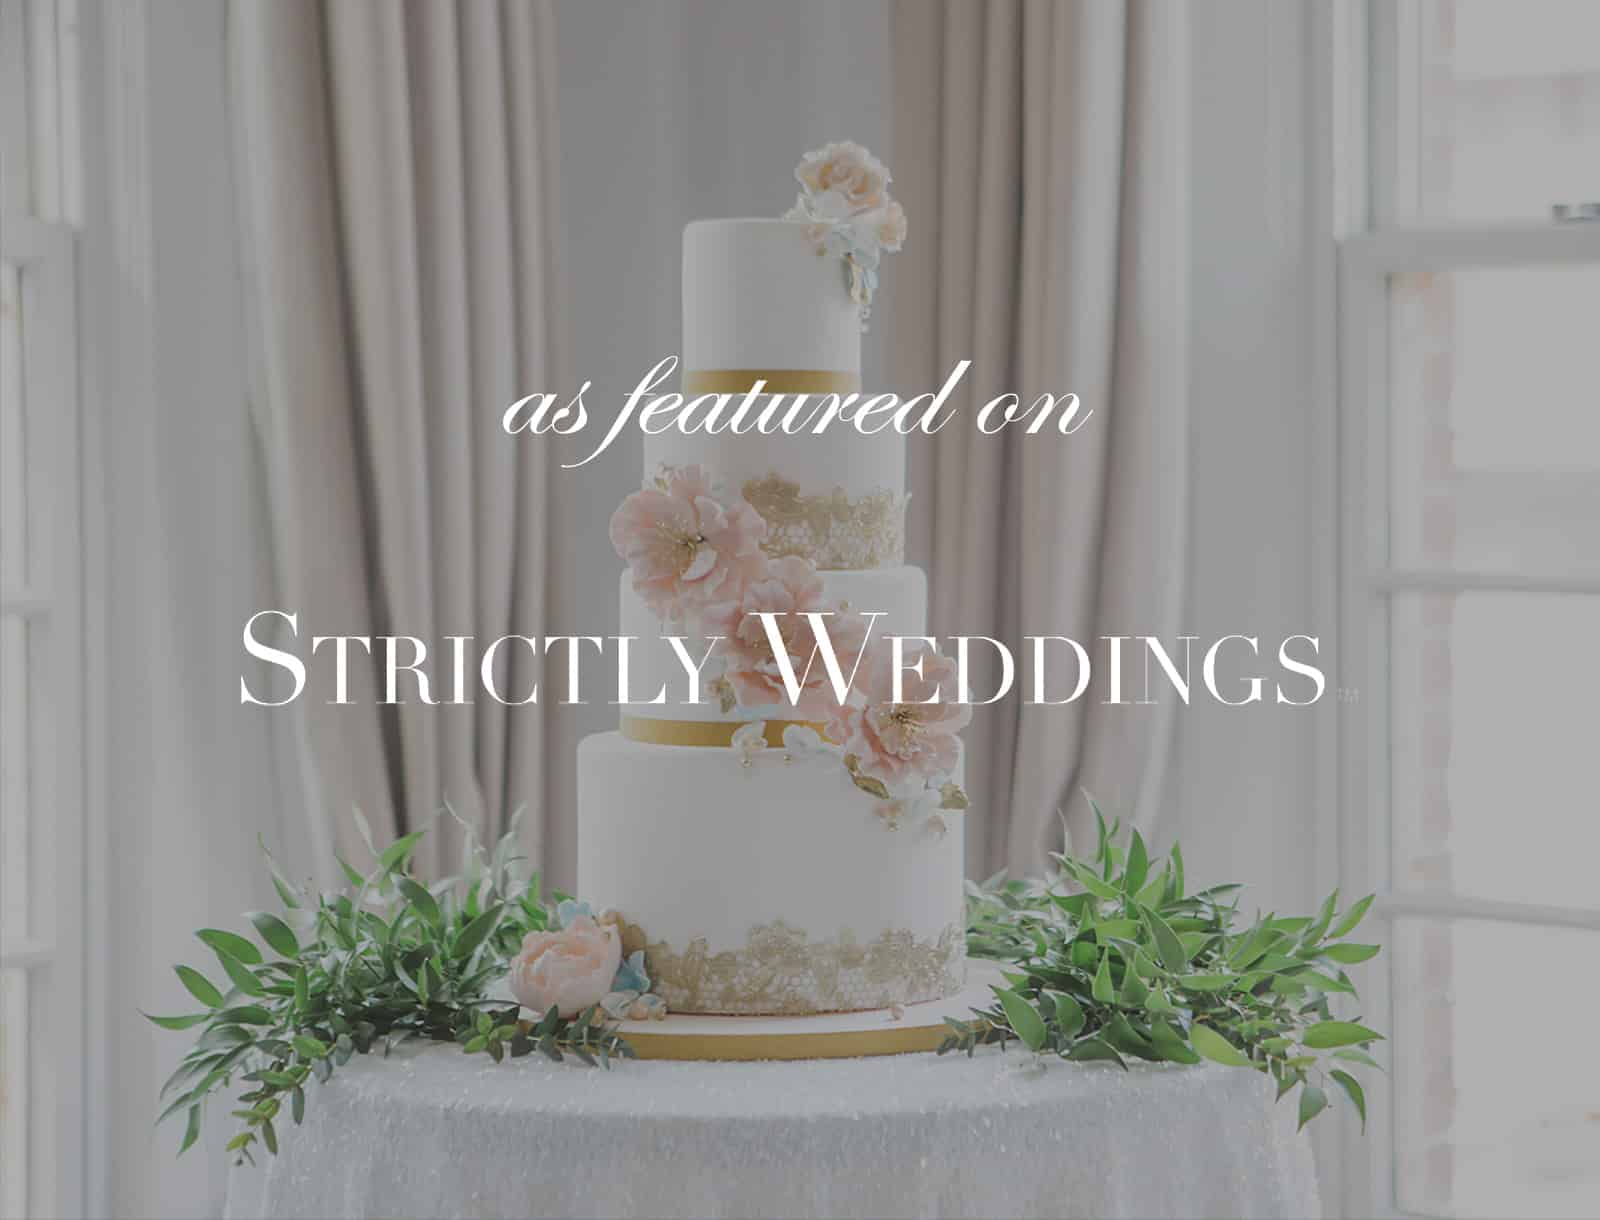 Featured on Strictly Weddings: Whimsical Disney Themed Wedding Inspiration